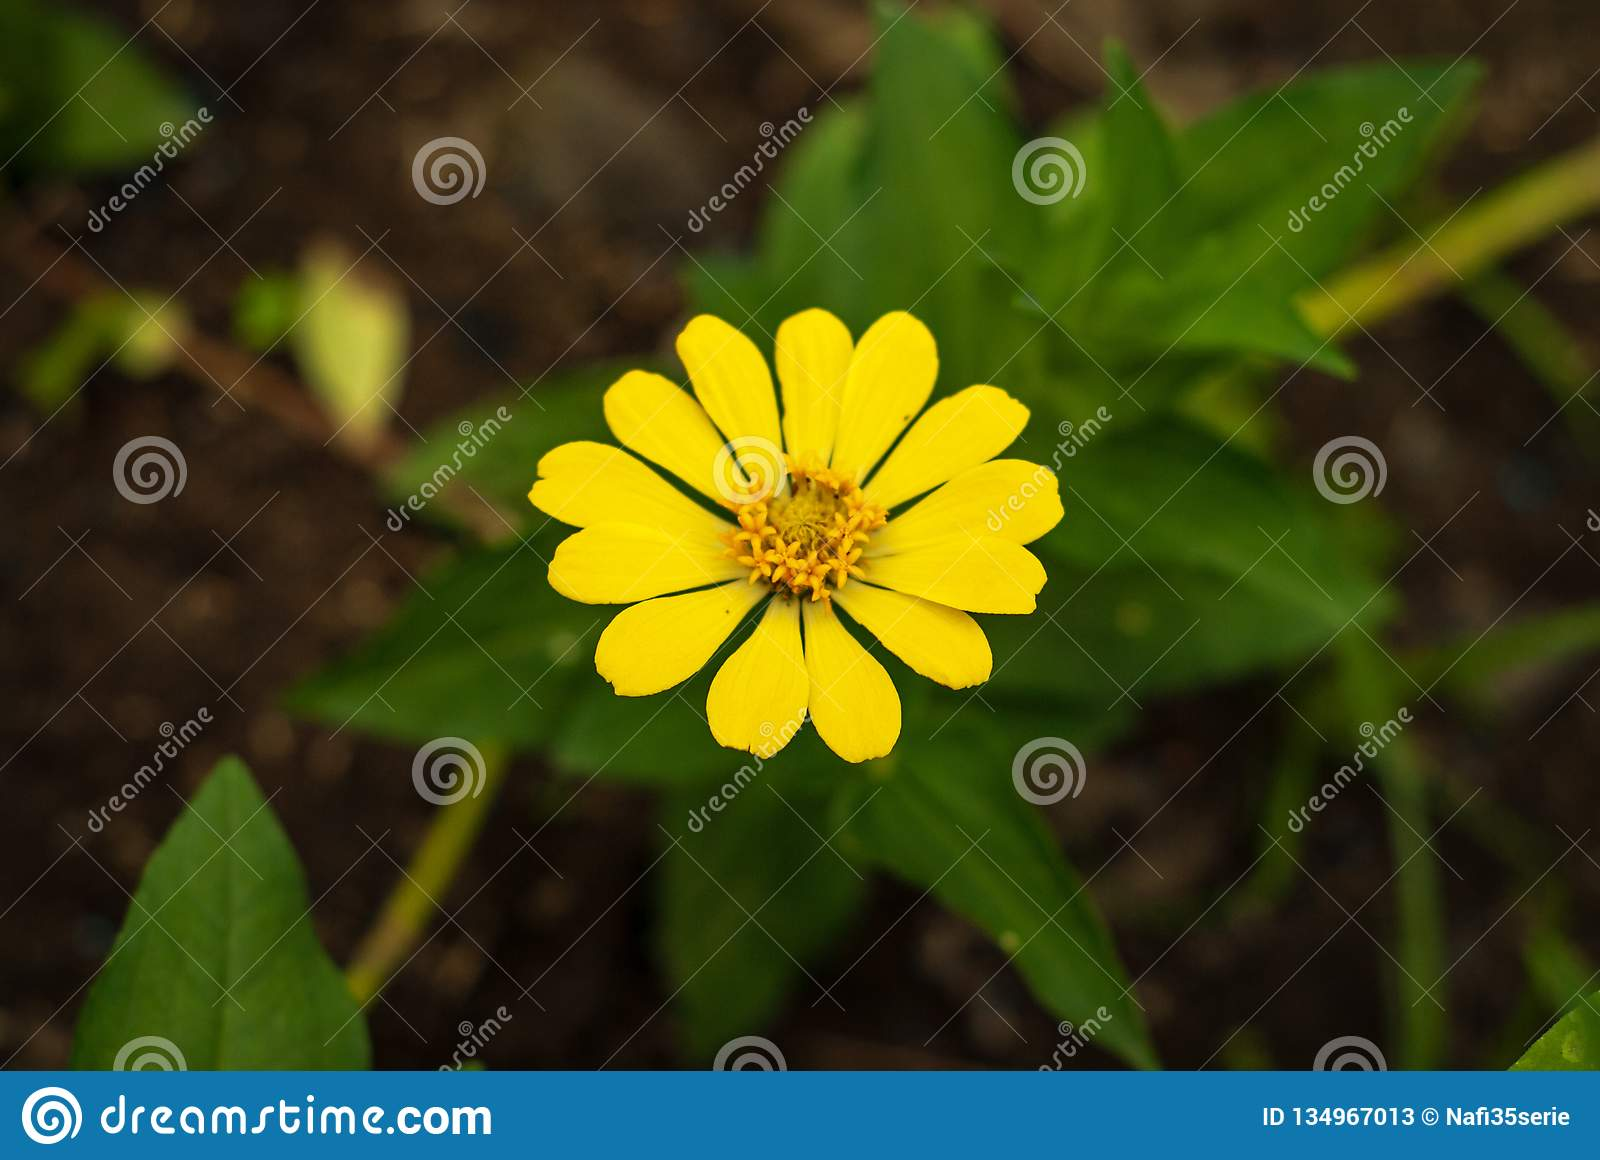 beautiful bright yellow flowers and green leaves with blurry background